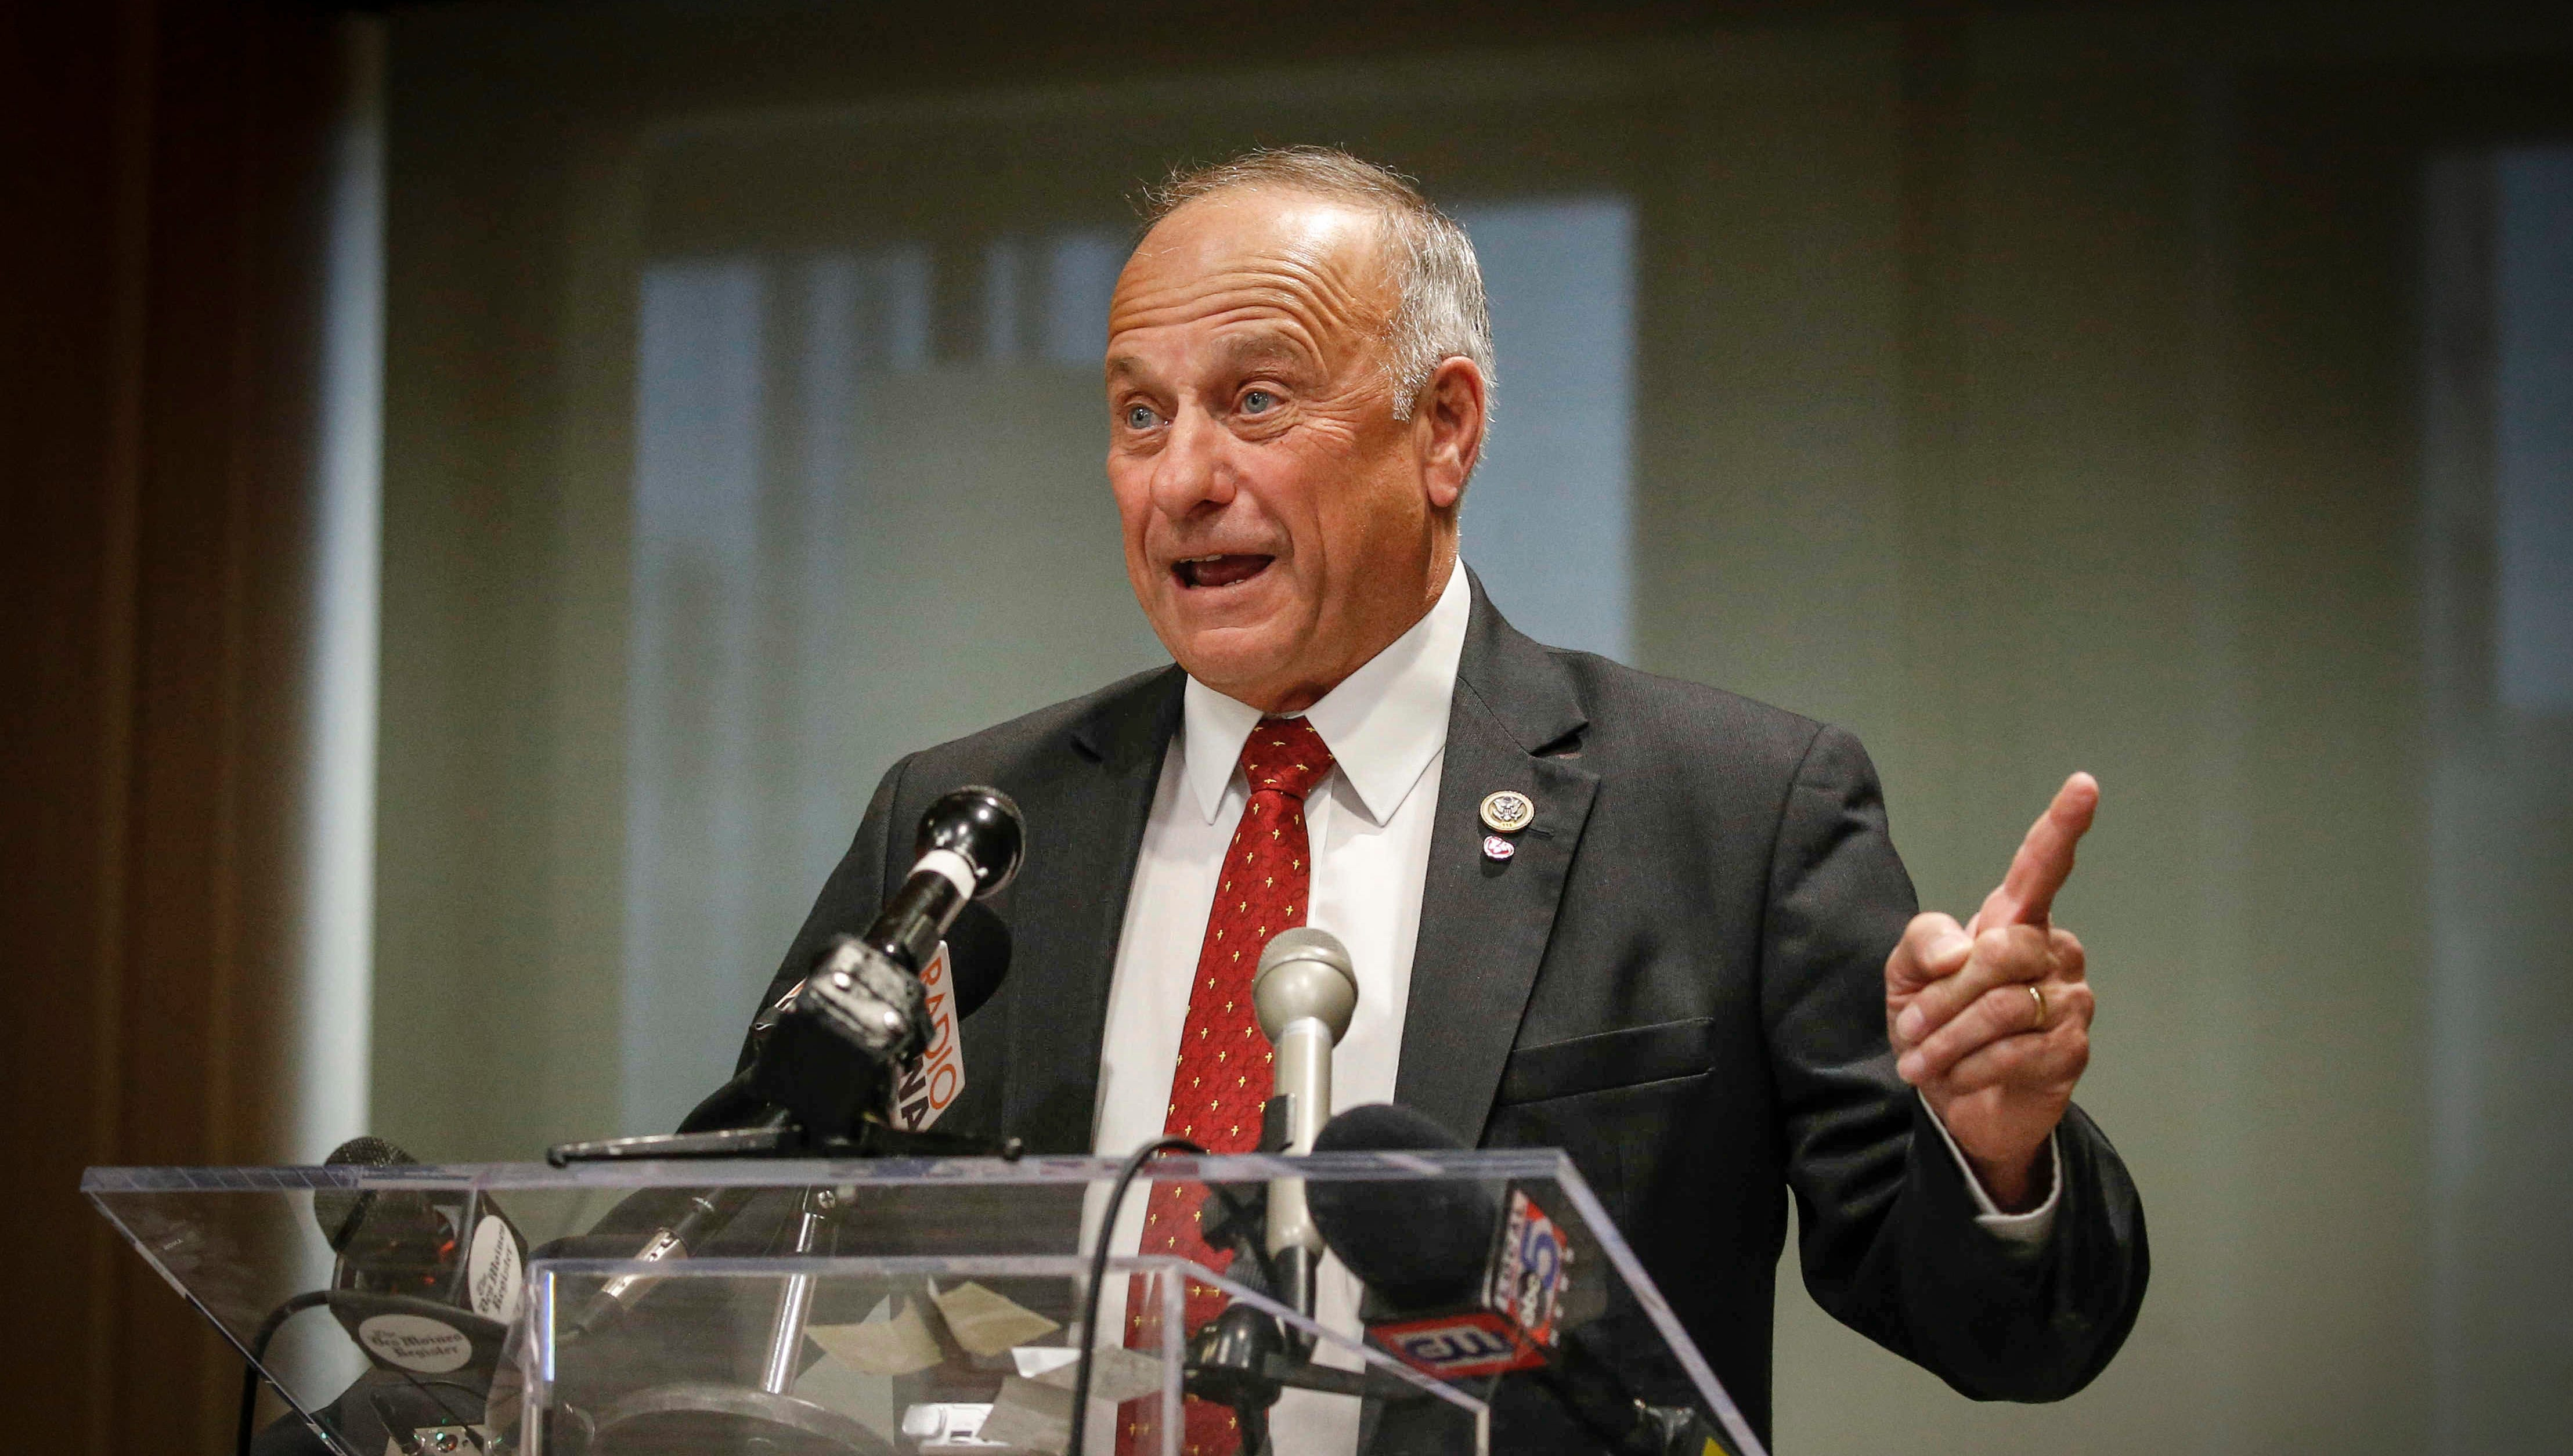 Current Status: The Register's editorial: Steve King should resign for the good of Iowa